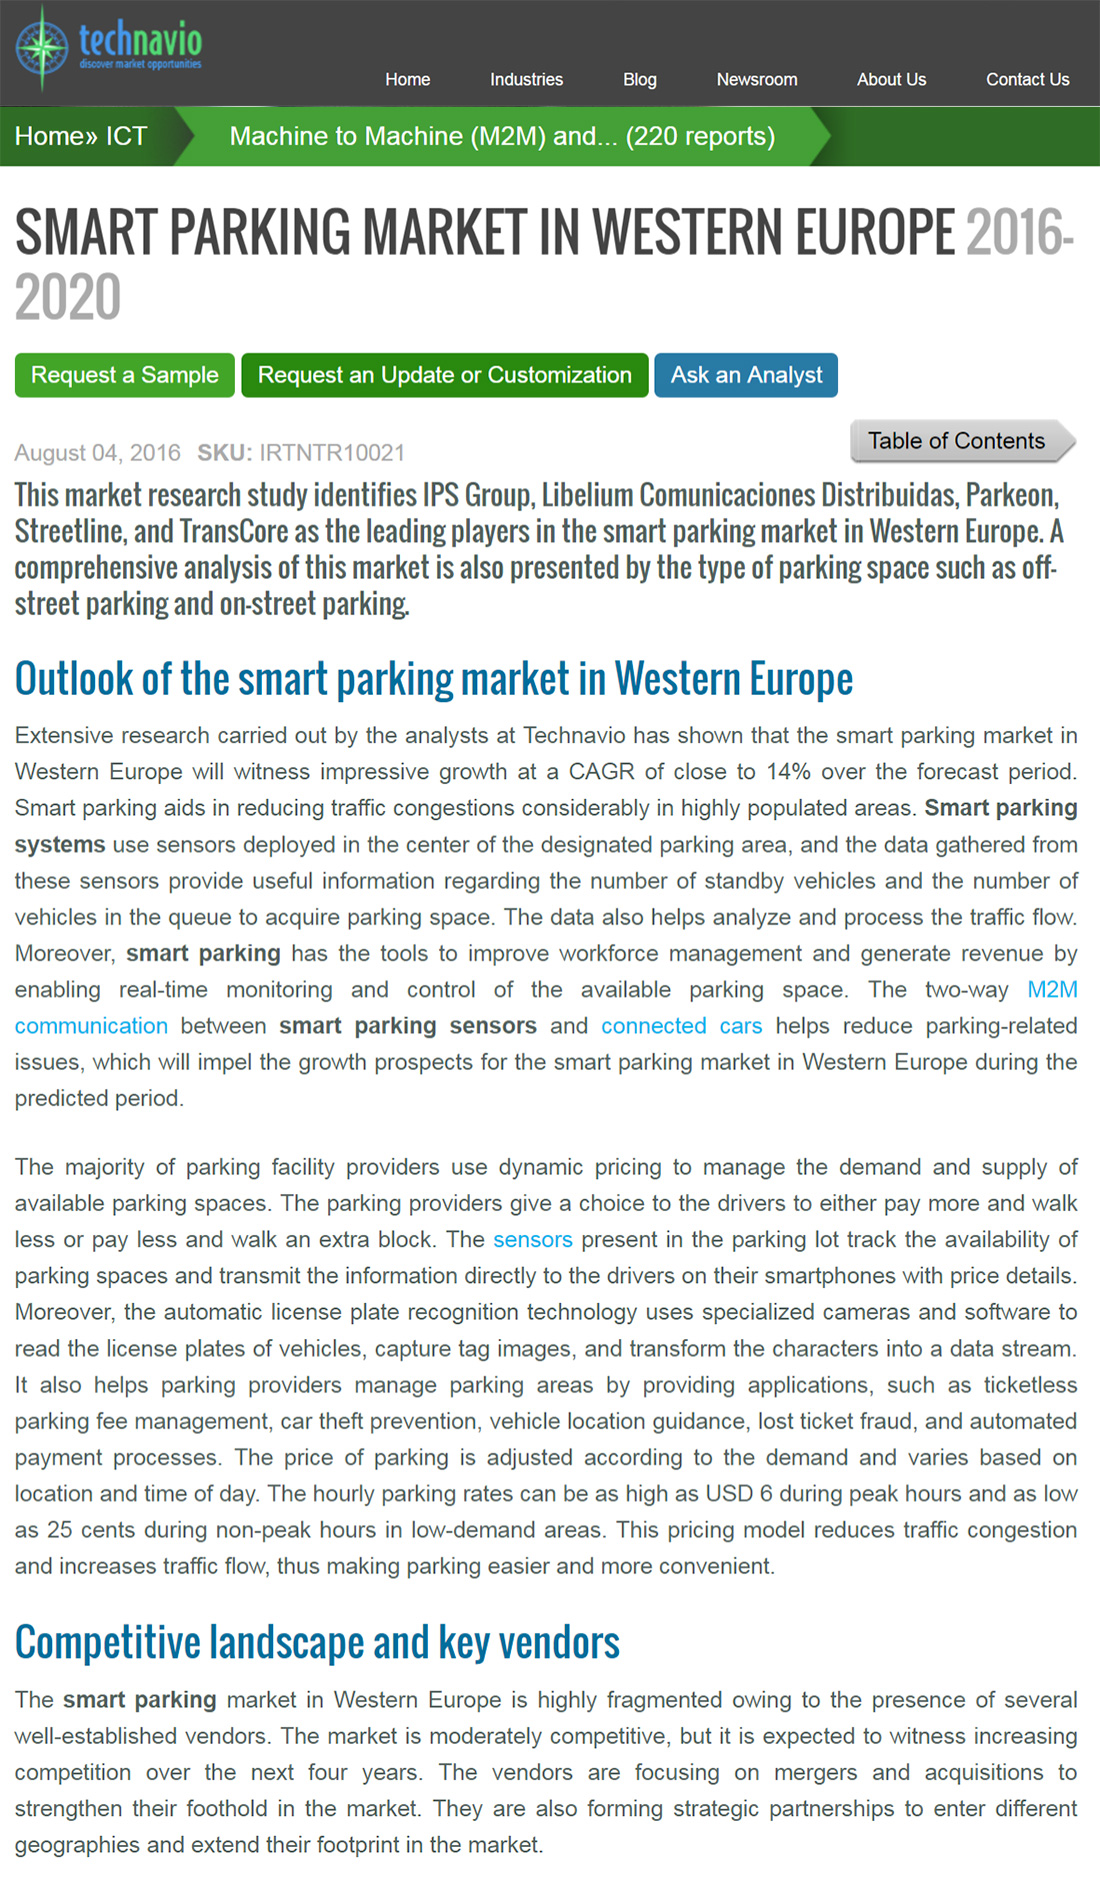 Smart Parking Market in Western Europe 2016-2020